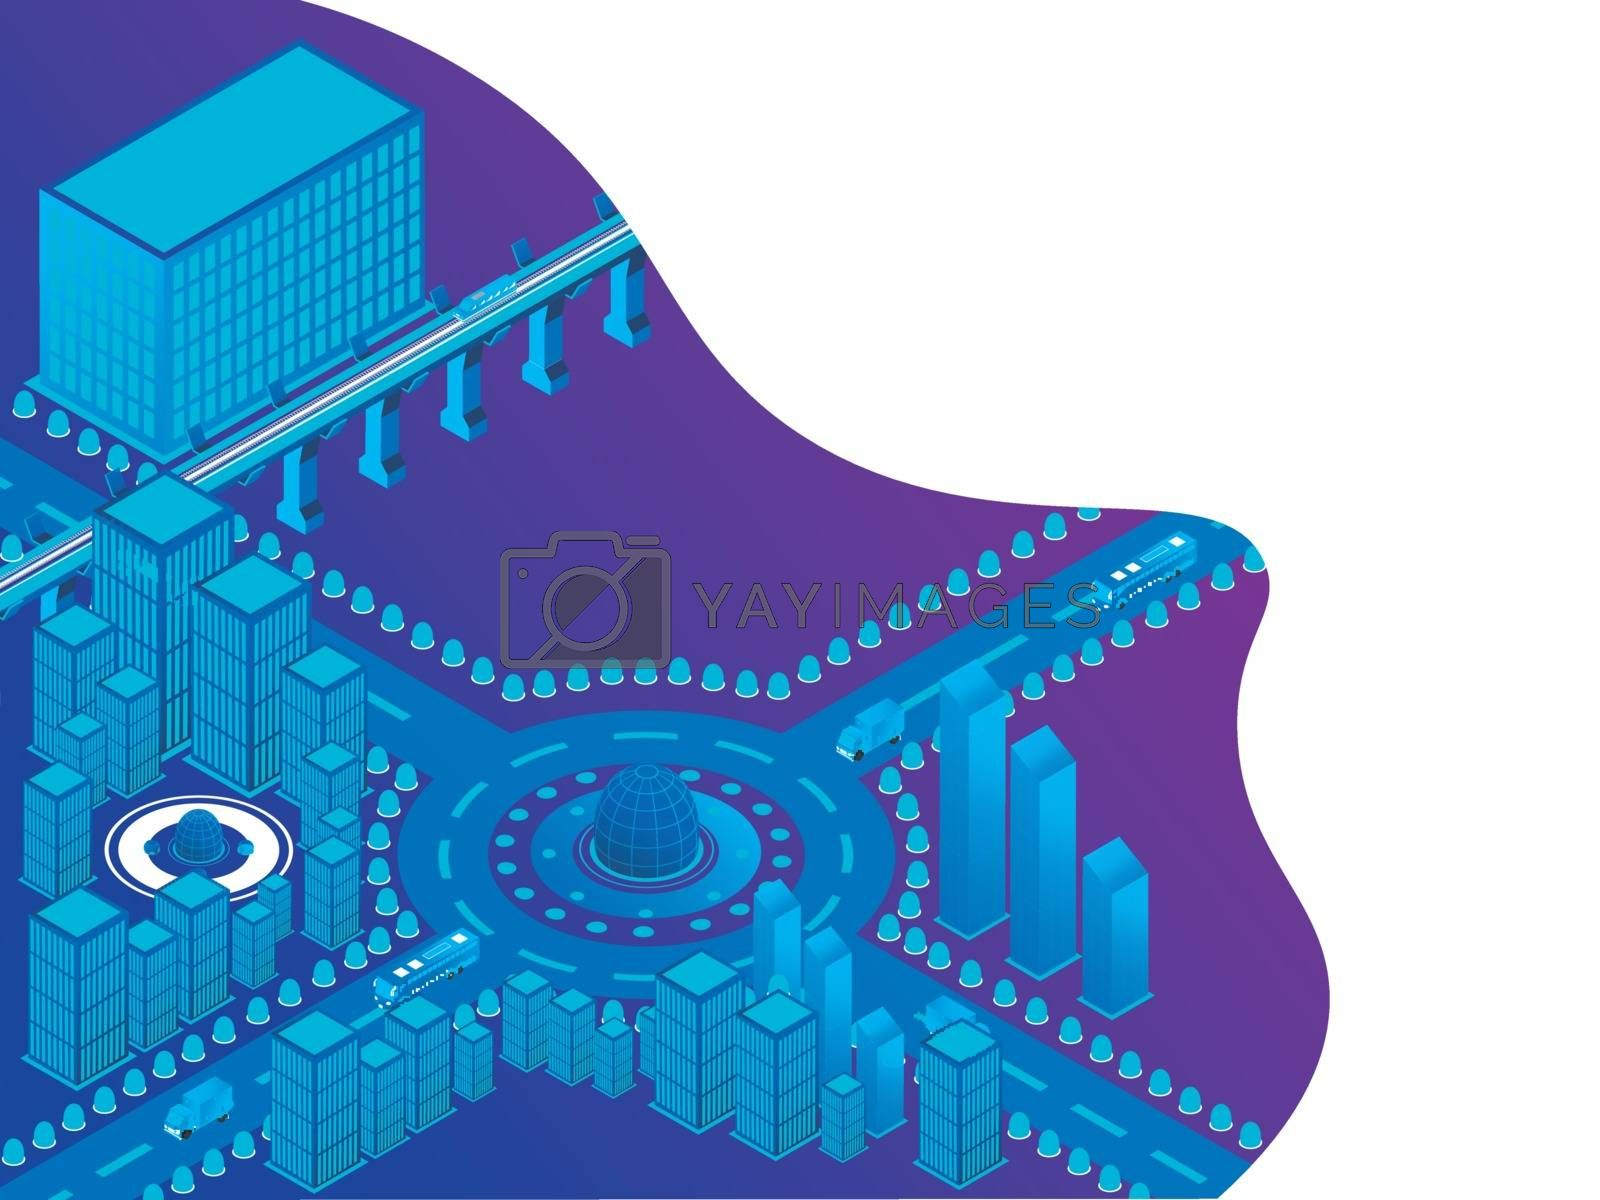 Royalty free image of Futuristic design with isometric illustration of urban landscape by aispl